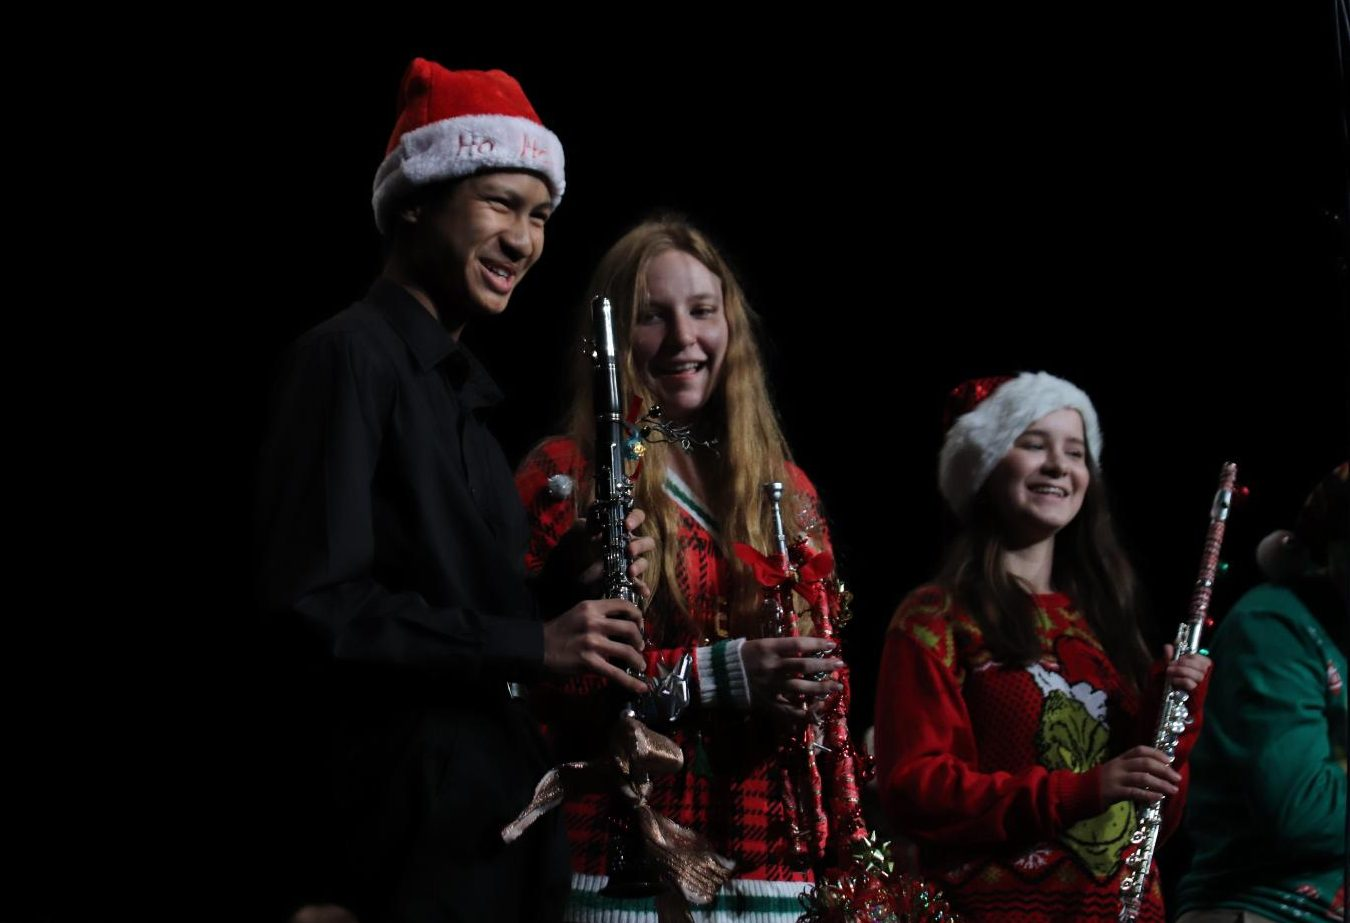 Sophomore Ngyugen Ngyugen, freshman Elizabeth Unger and junior Ashley Snyder pose with their decorated instruments in their ugly sweaters at the Winter Concert.